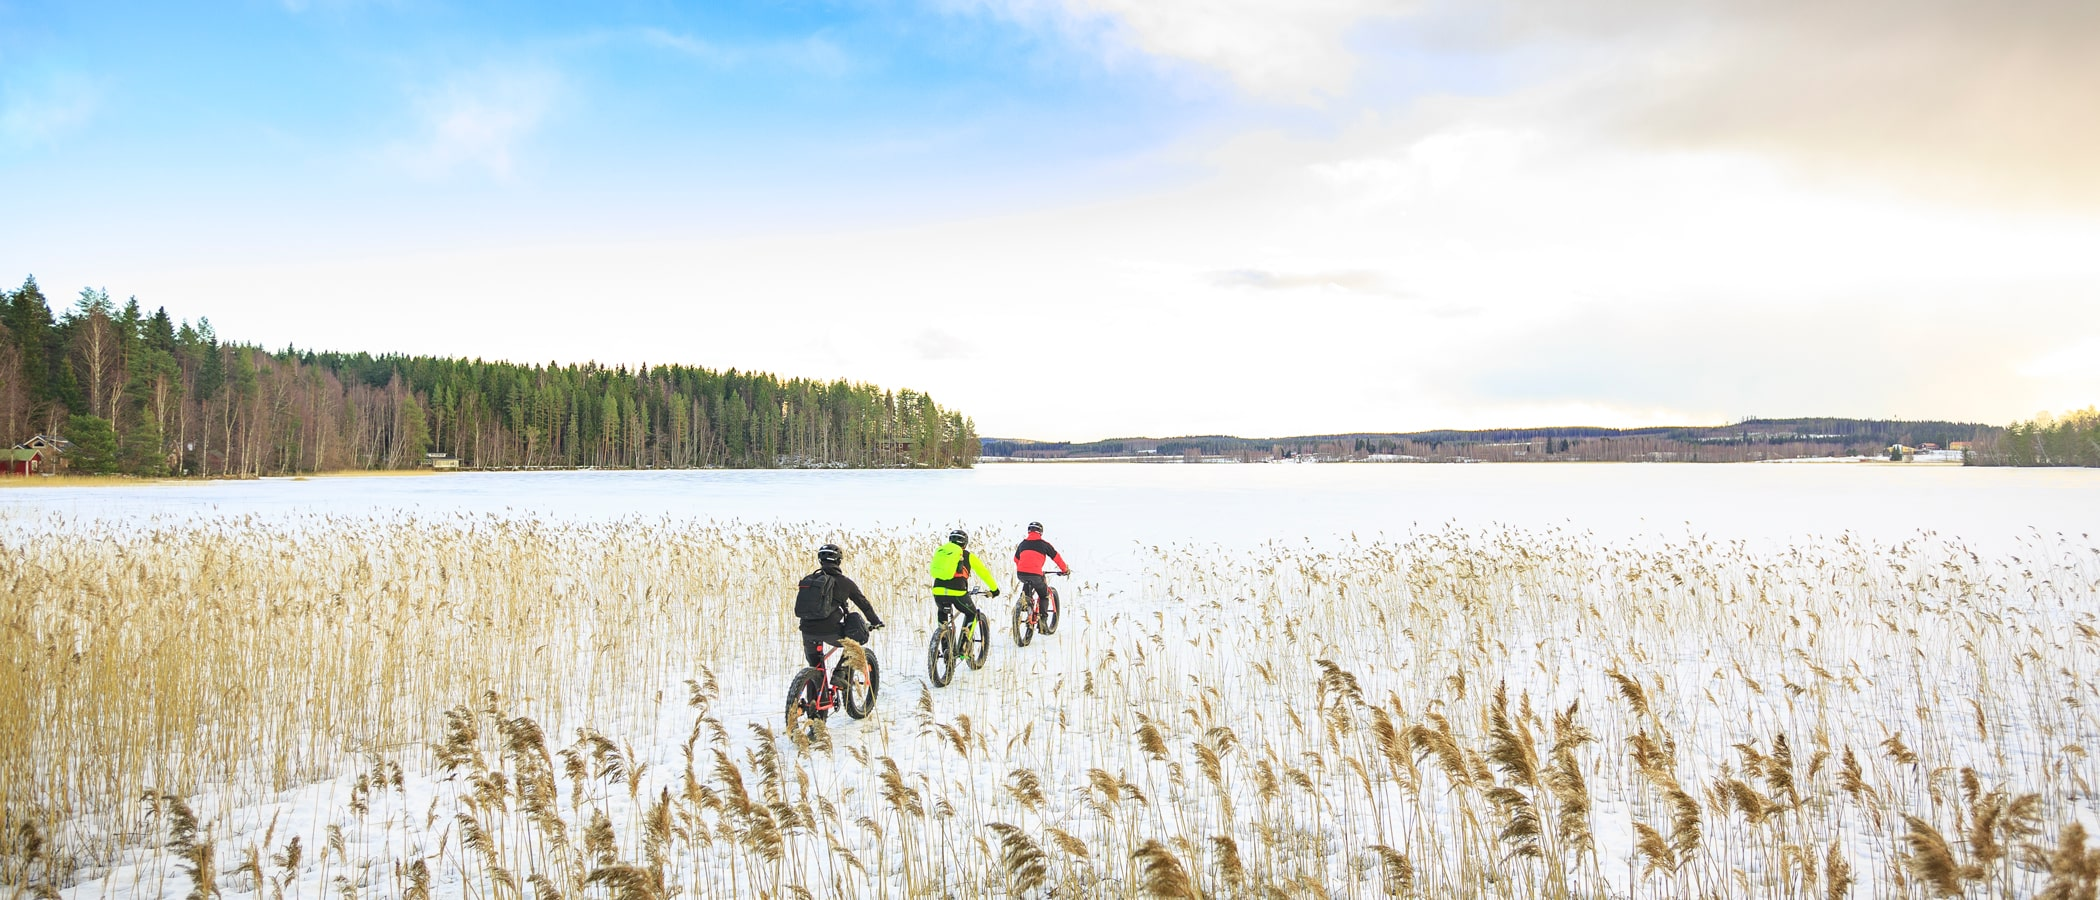 Three people riding their fatbikes on the lake ice